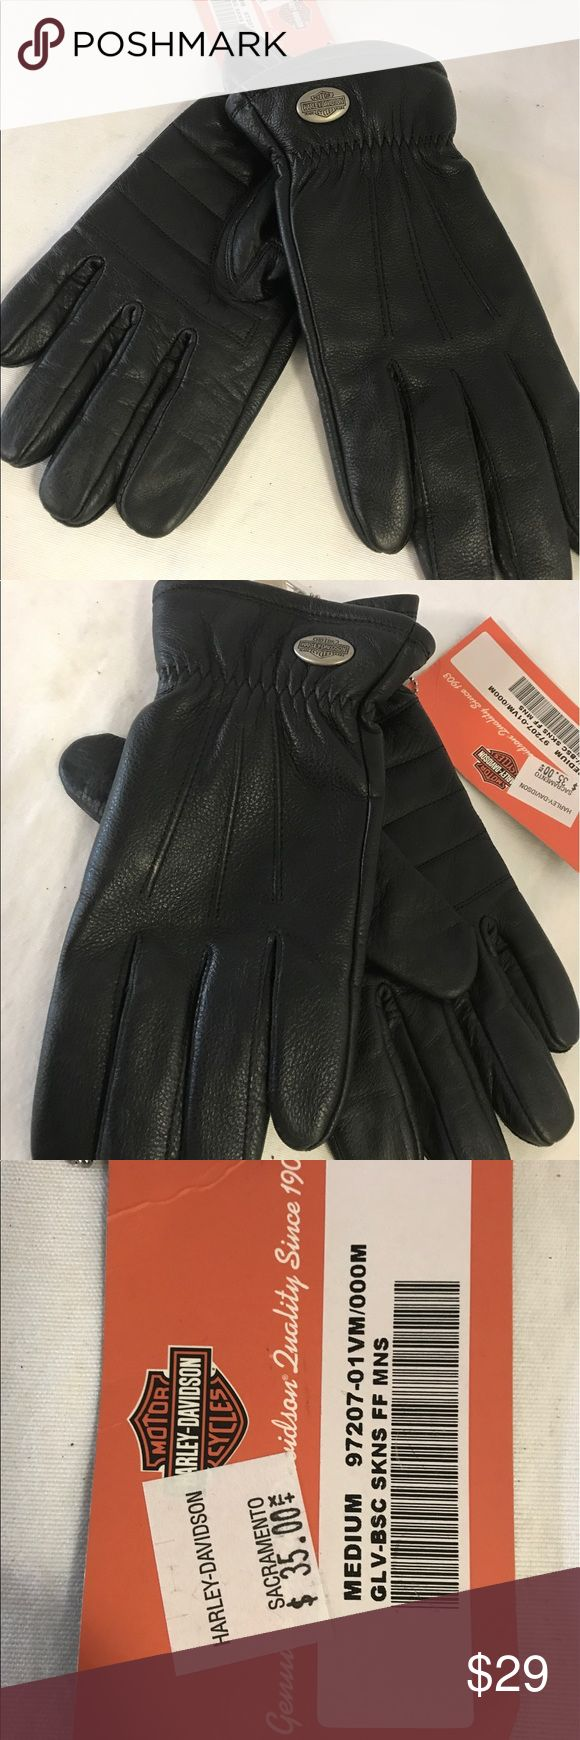 Womens black leather gloves australia - Harley Davidson Medium Leather Gloves Nwt